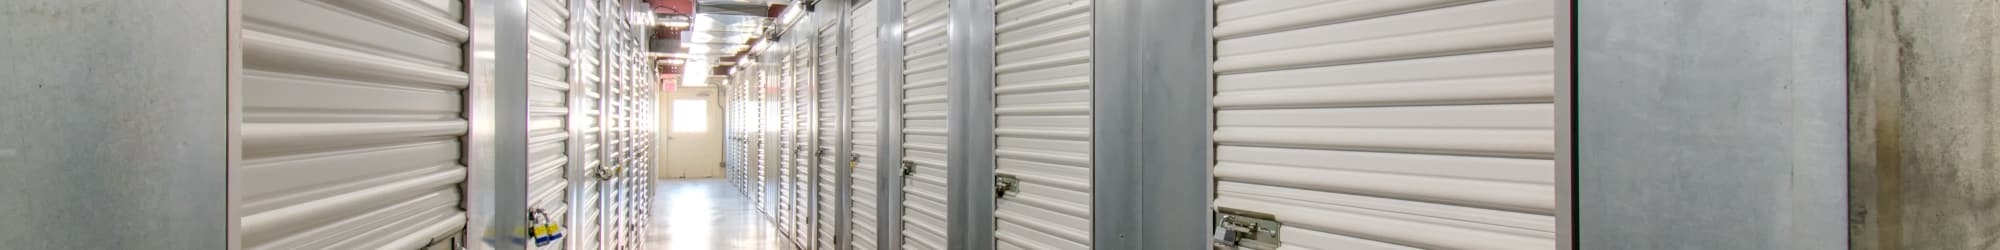 Storage Inns of America offers units for rent in Moraine, Ohio